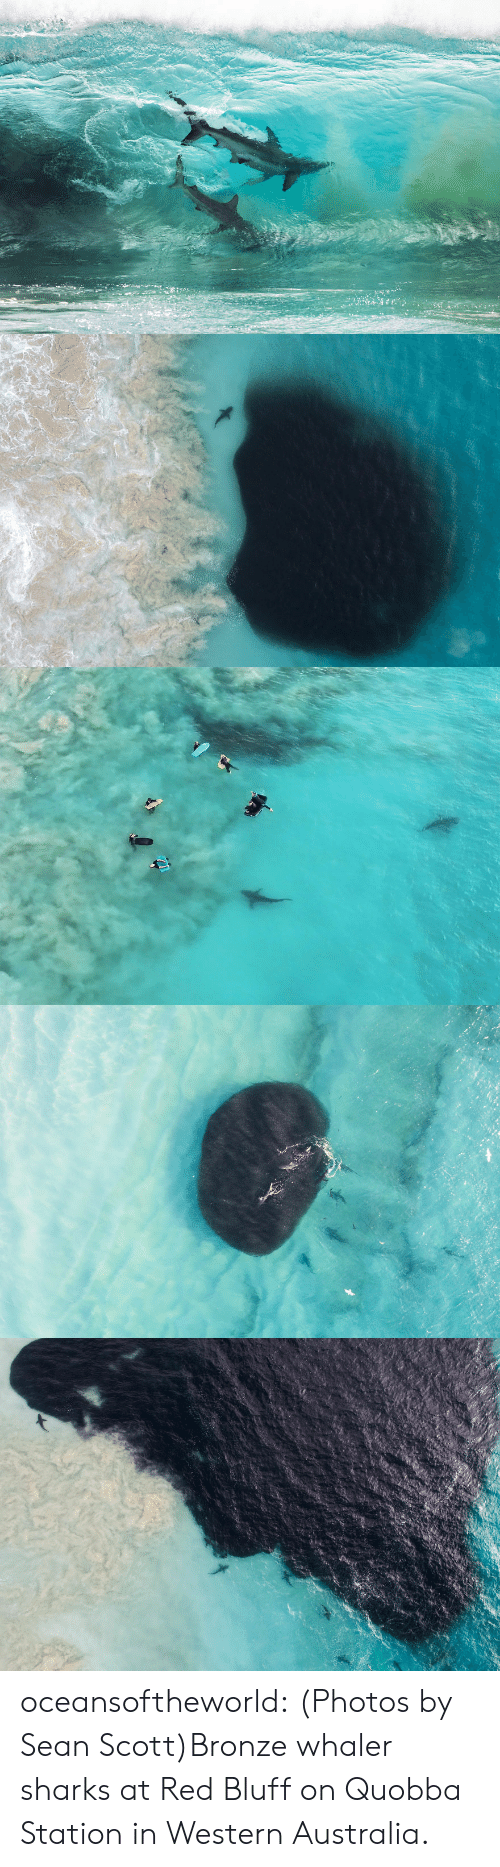 organic: oceansoftheworld:  (Photos by Sean Scott)Bronze whaler sharks at   Red Bluff on Quobba Station in Western Australia.